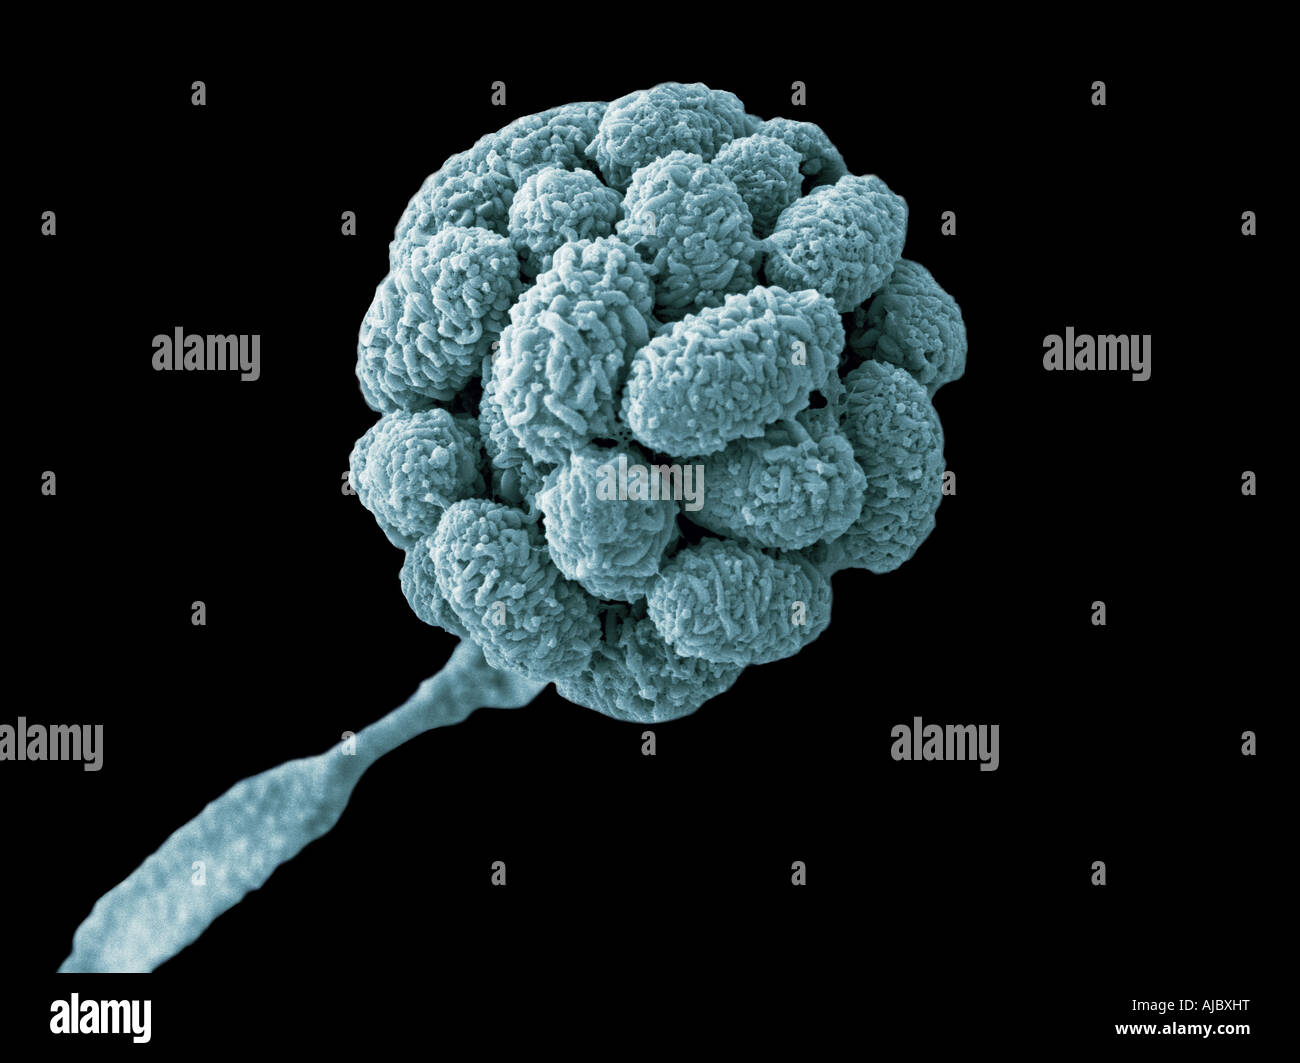 A scanning electron micrograph (SEM) of Stachybotrys chartarum Stock Photo